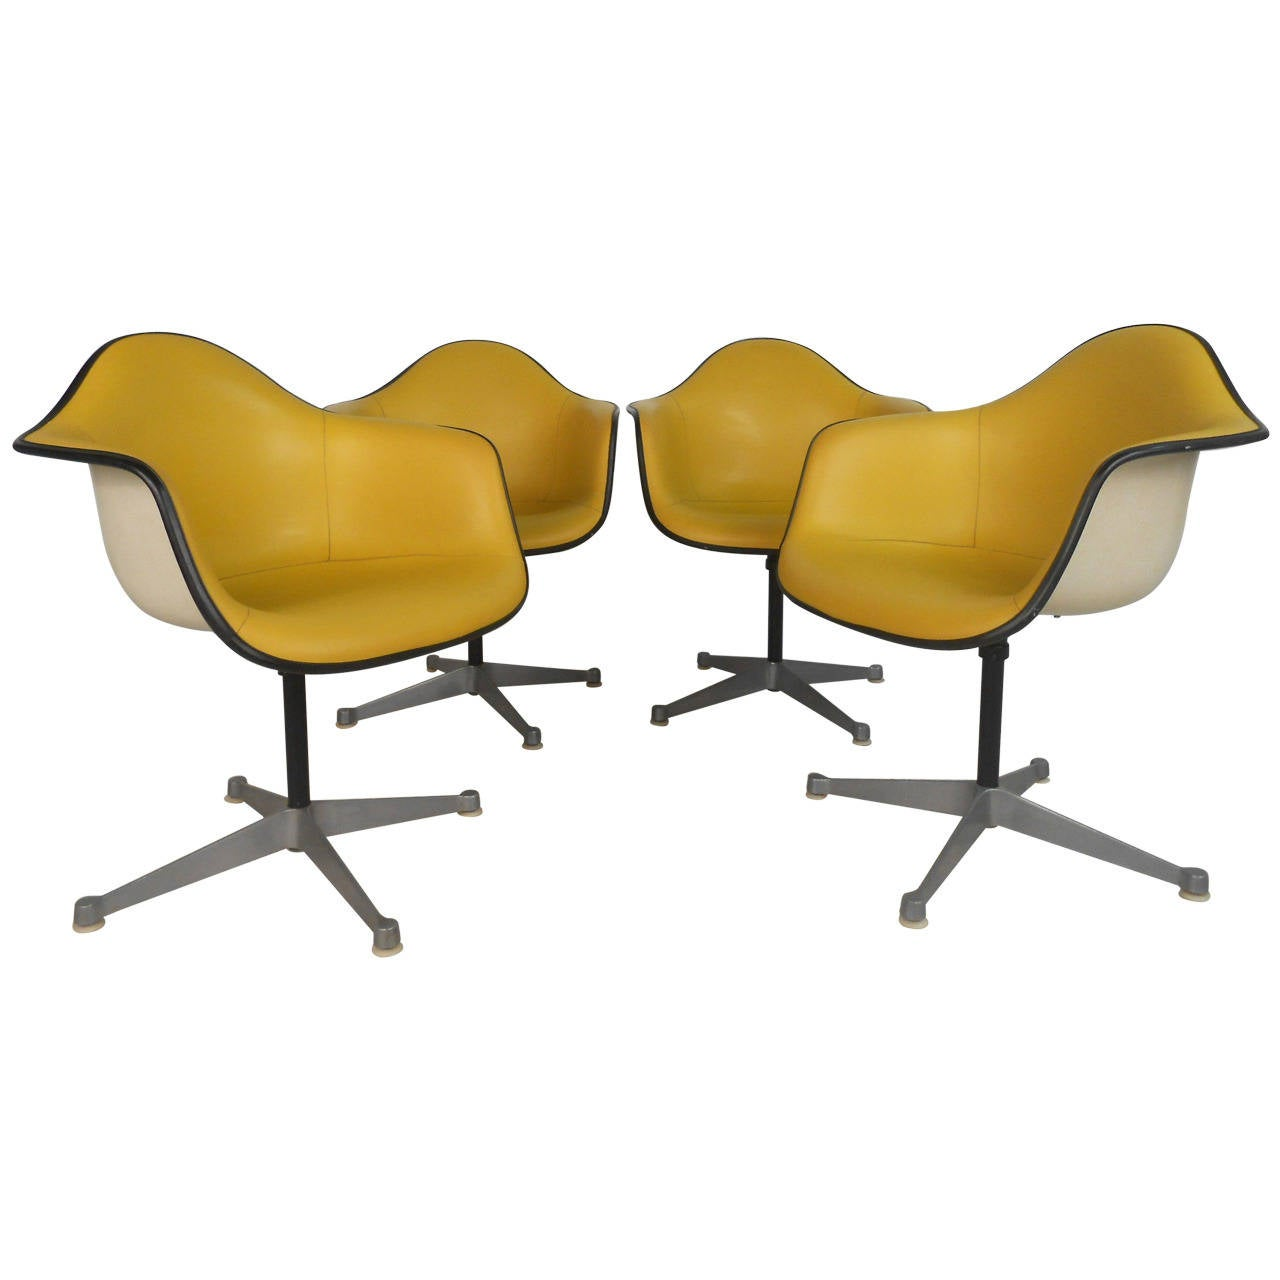 Charles eames for herman miller bucket chairs at 1stdibs - Herman miller bucket chair ...